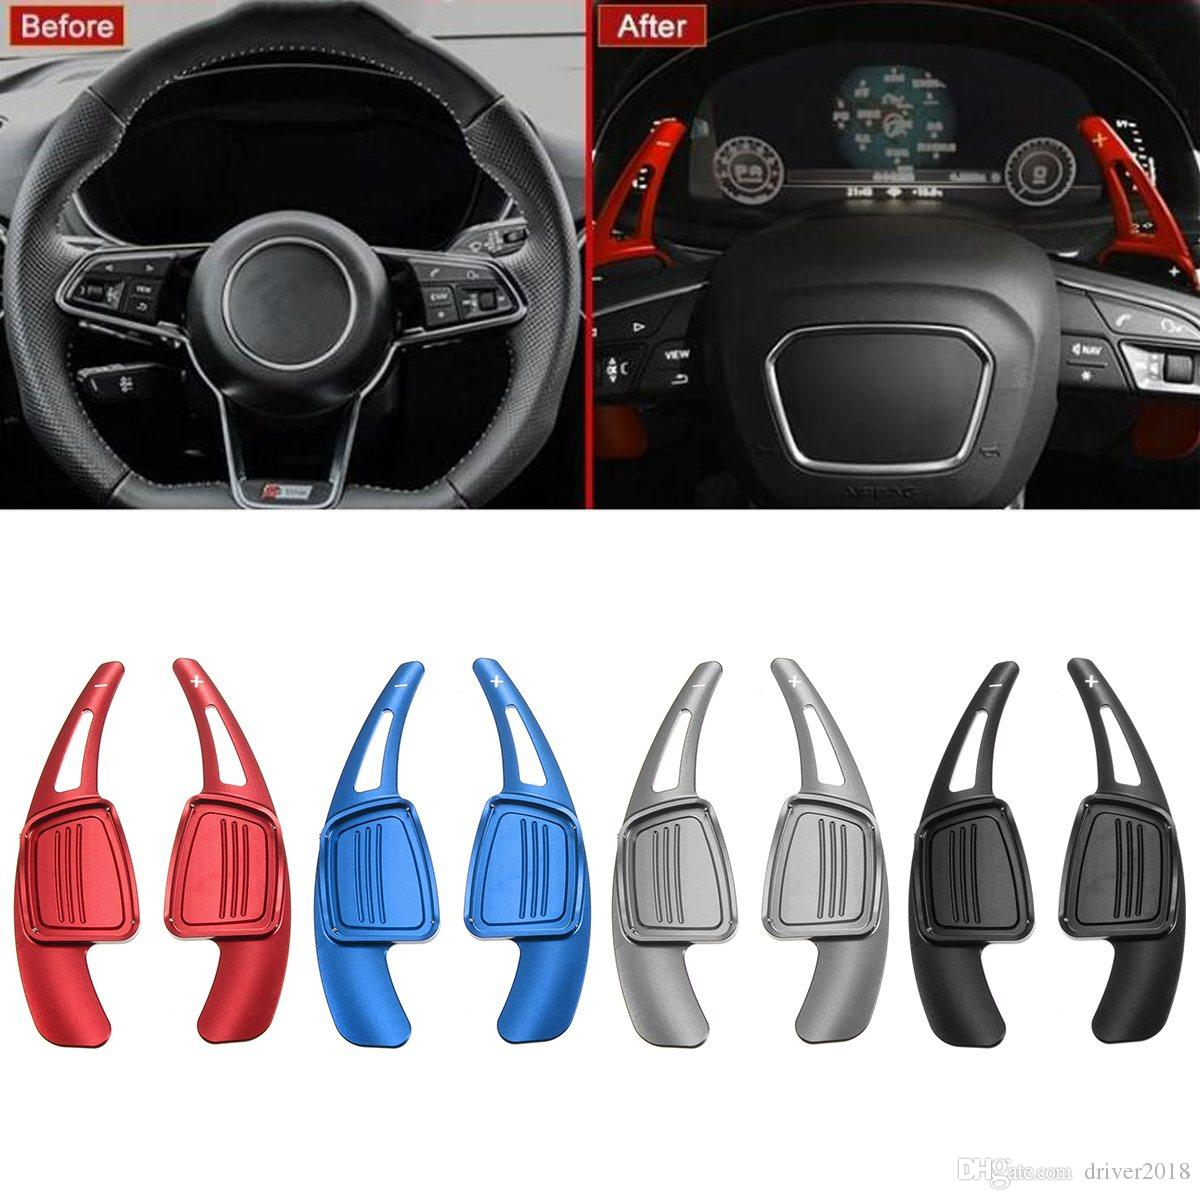 Aluminum Alloy Steering Wheel Gear Shift Paddle Shifters For Audi A4 S4 B9 A3 A5 Q2 Q5 Q7 TT Paddle Accessories